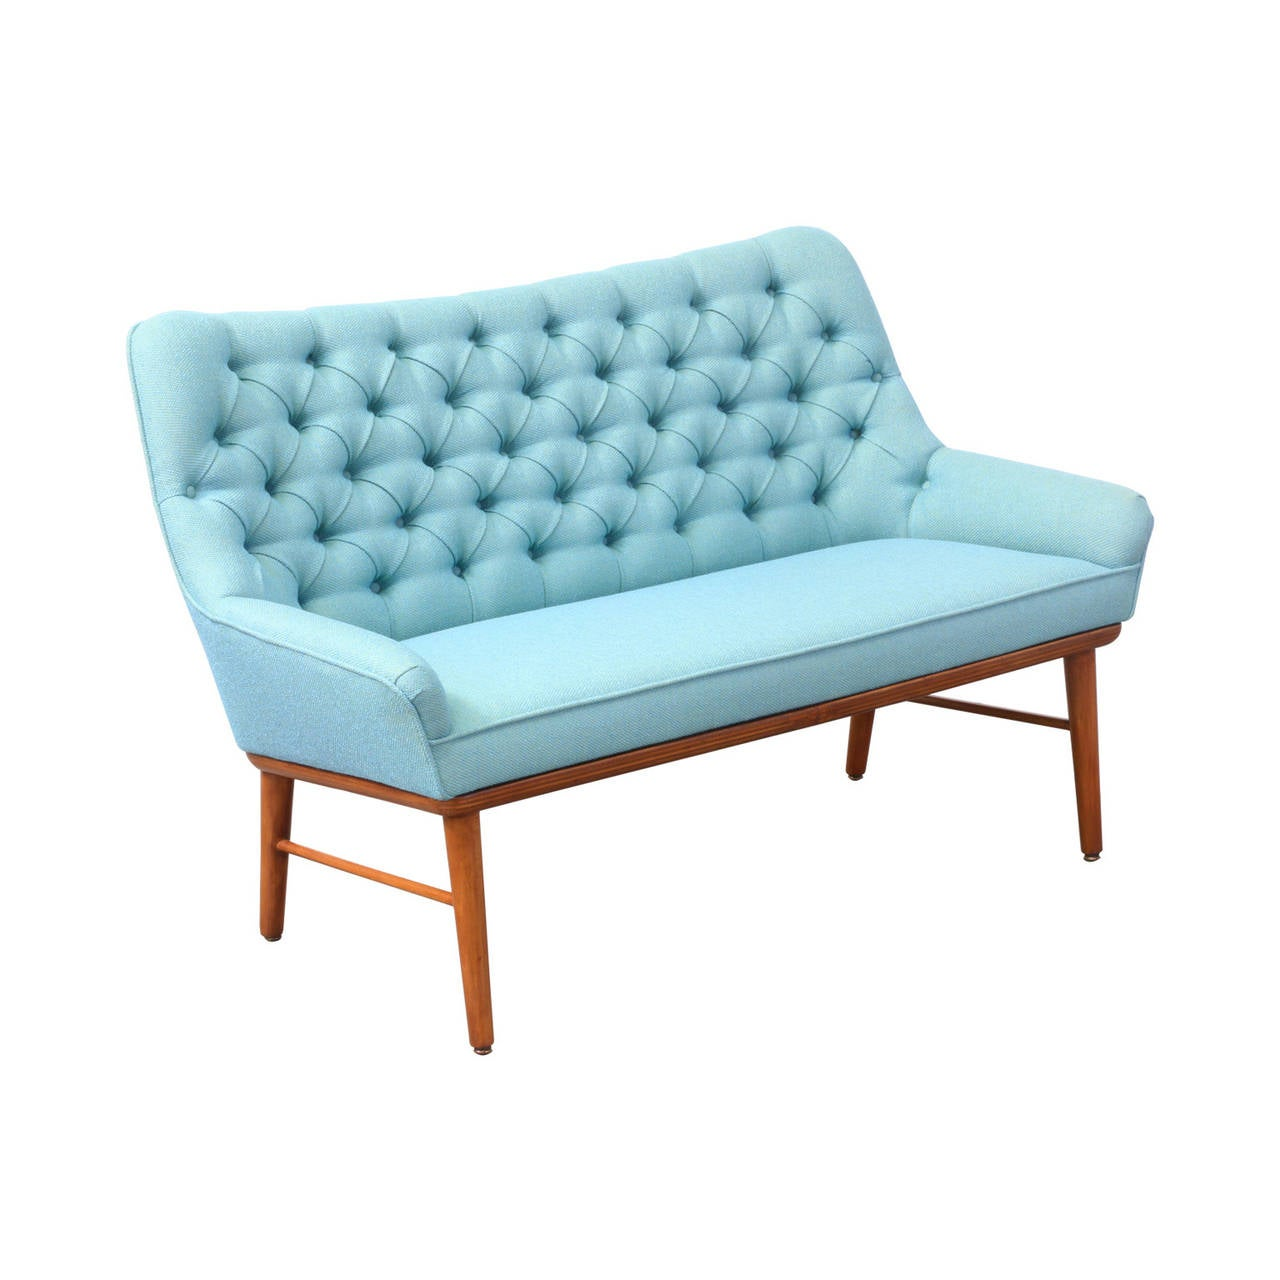 Mid century modern tufted loveseat for sale at 1stdibs for Modern love seats